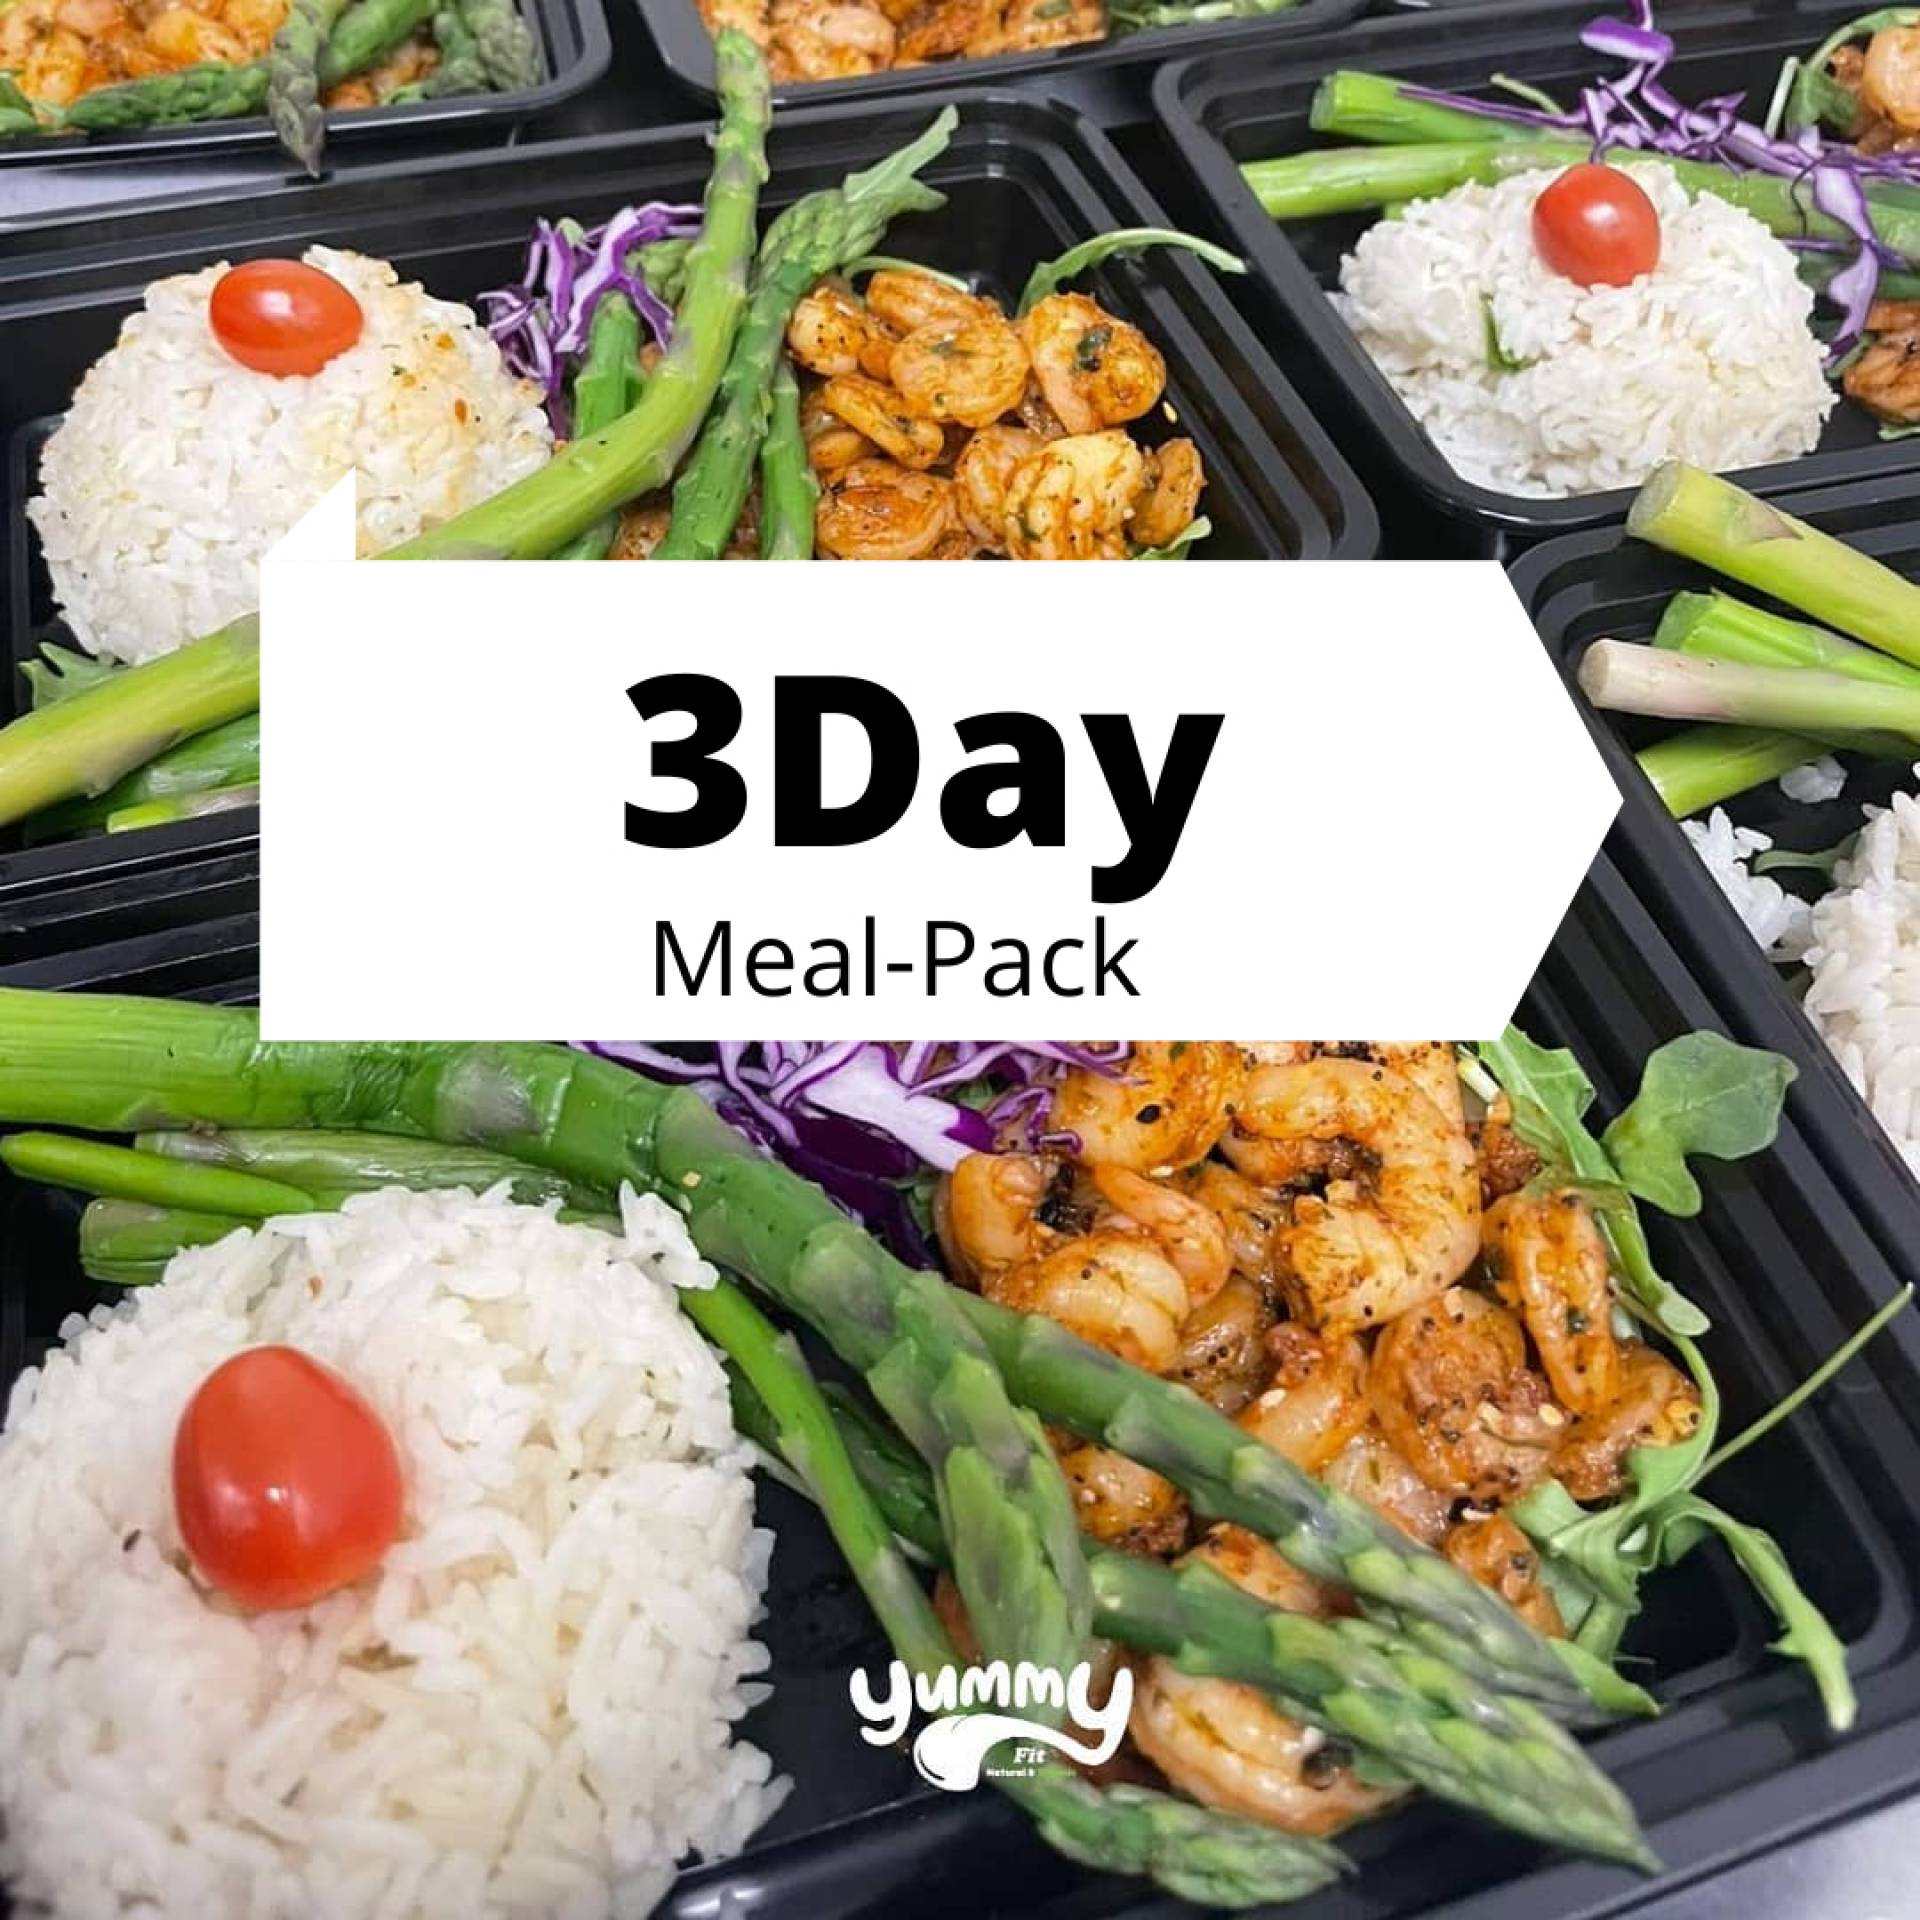 3Day - Meal Pack